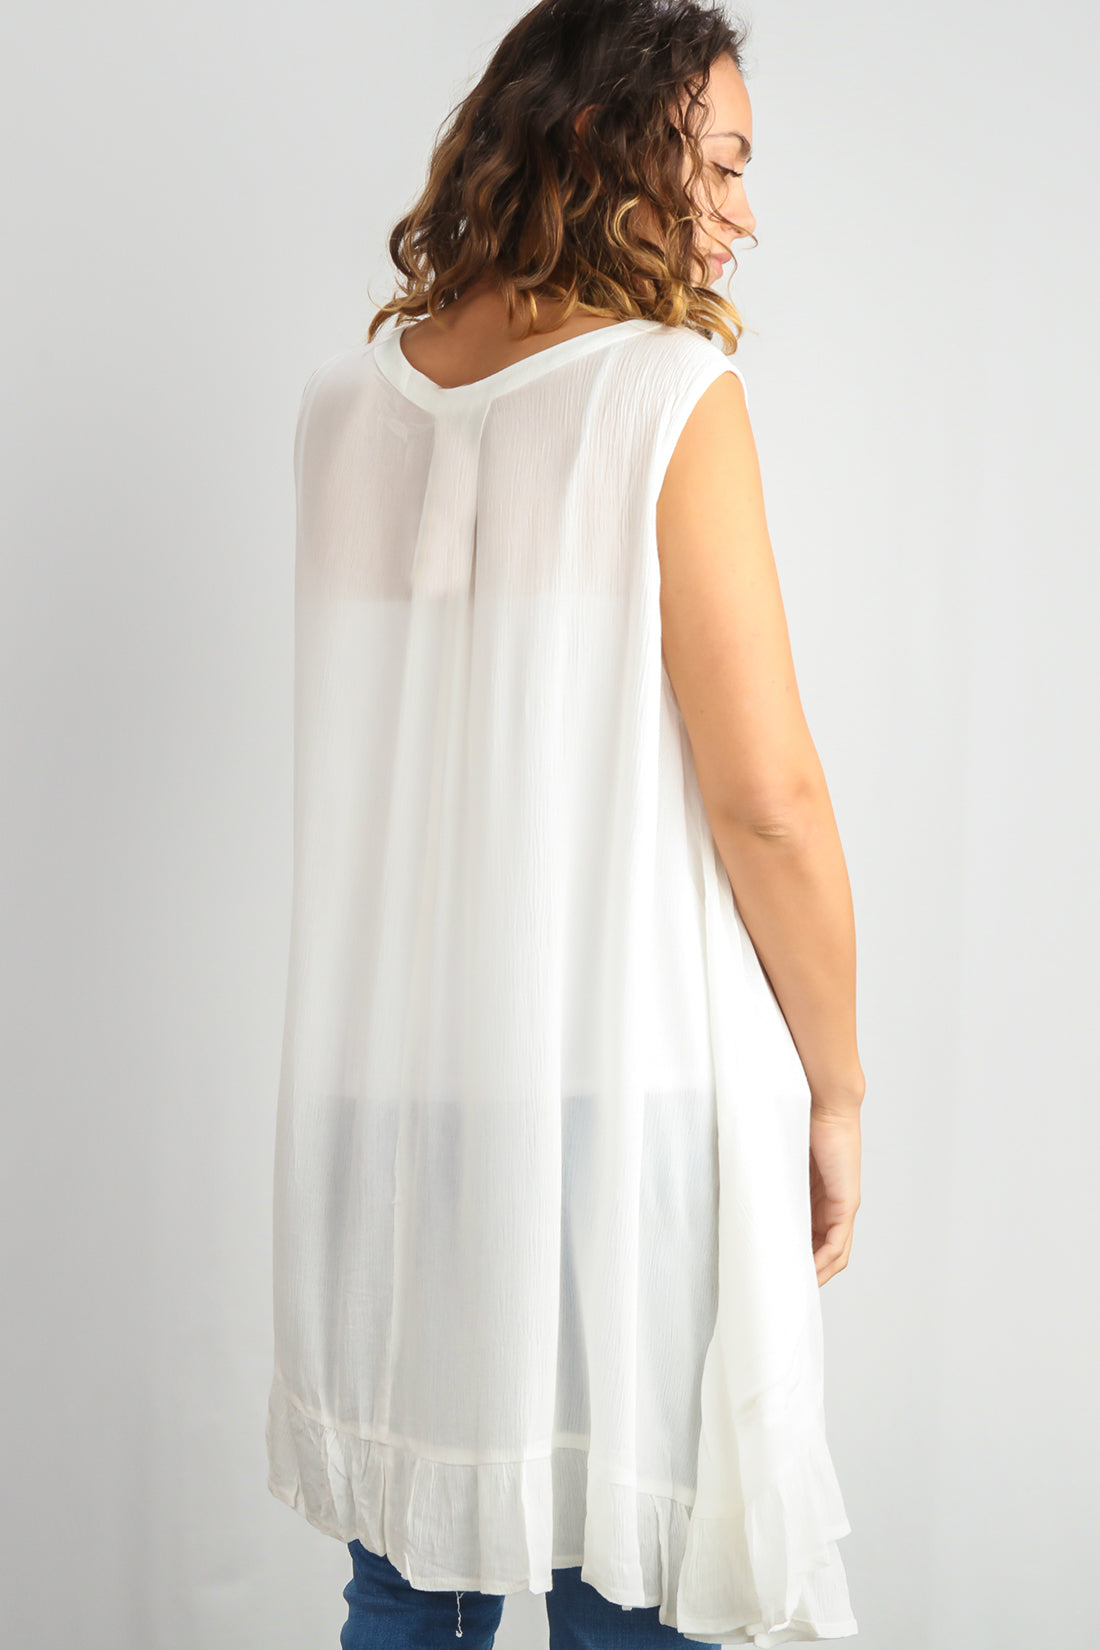 Ivory Pleated Key Hole Tunic